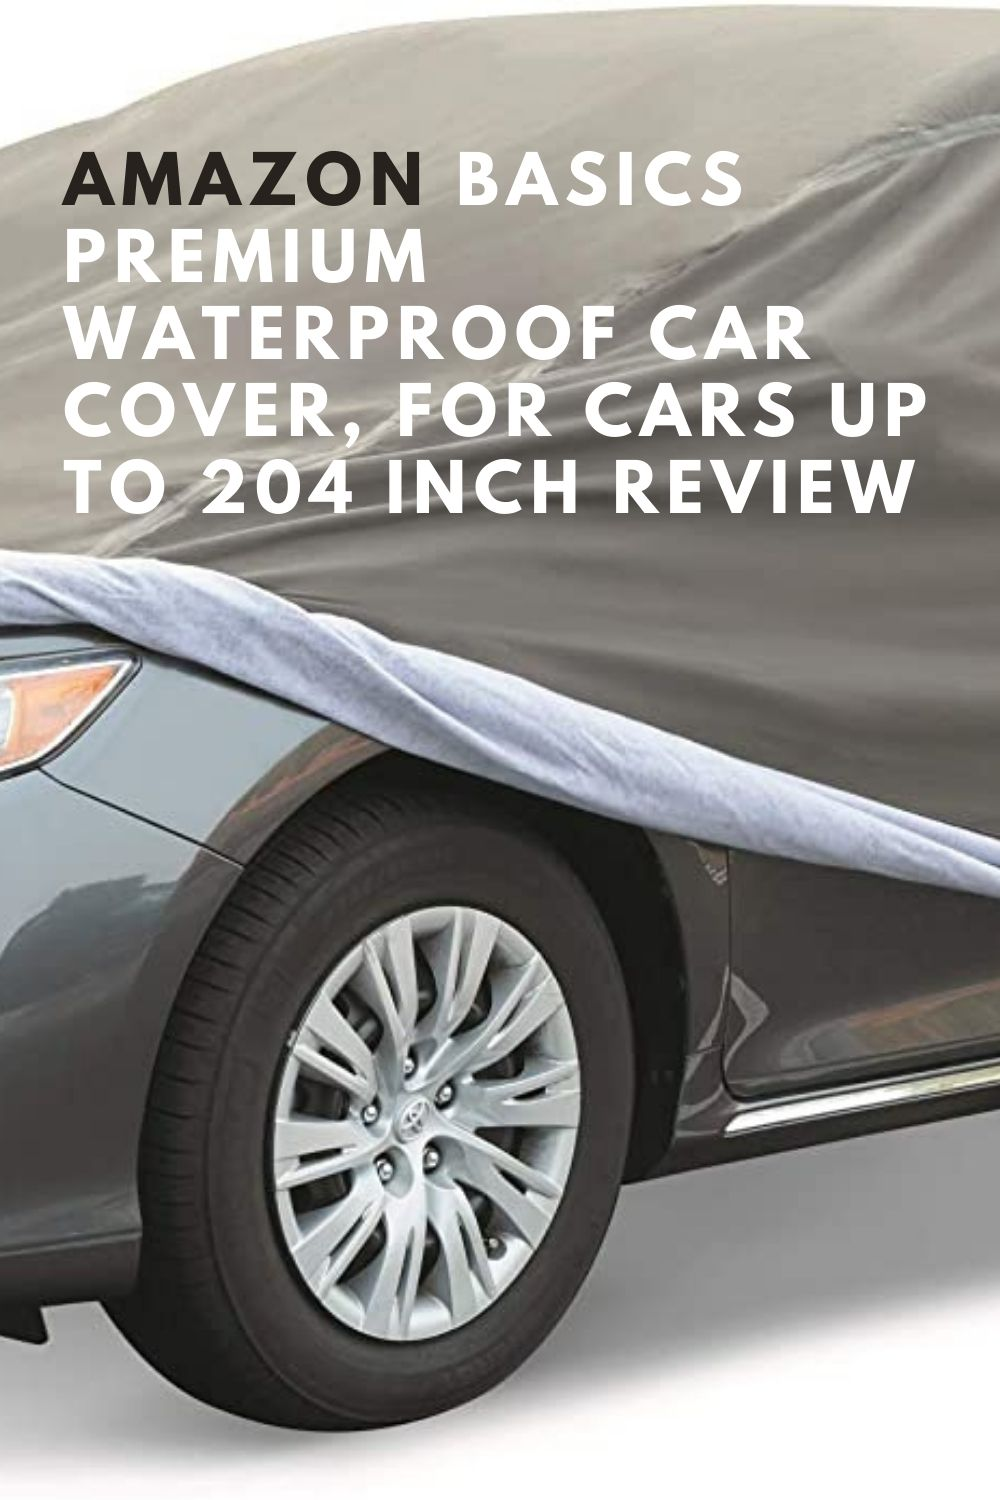 Amazon Basics Premium Waterproof Car Cover, for Cars up to 204 Inch